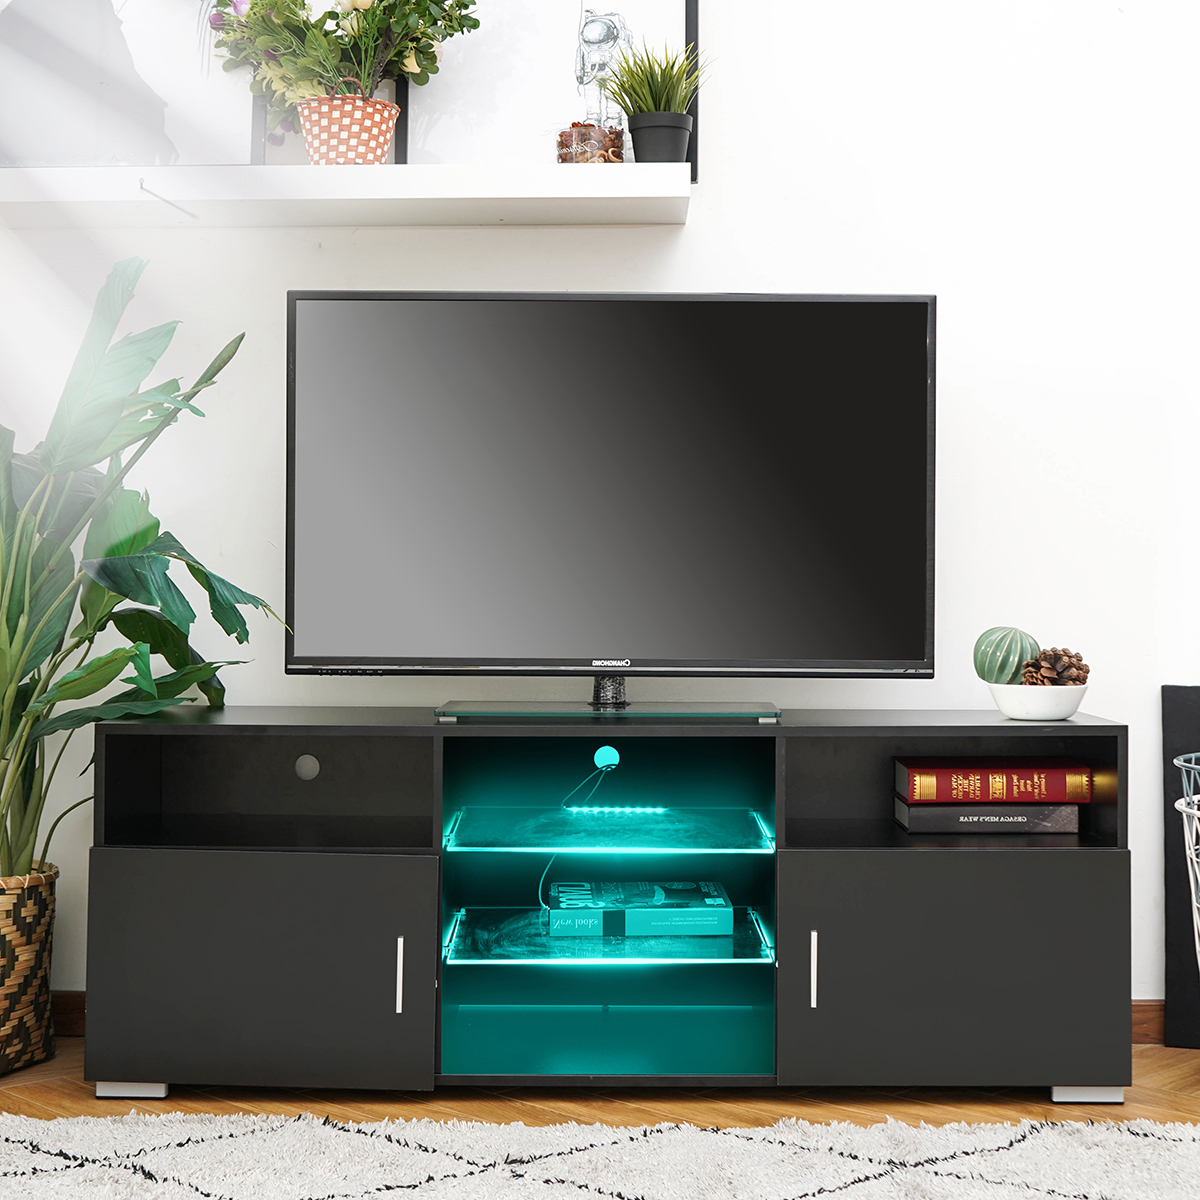 """Grenier Tv Stands For Tvs Up To 65"""" In Most Popular 57'' Led Tv Stand For Tvs Up To 61"""", With Rgb Led Light (View 7 of 25)"""